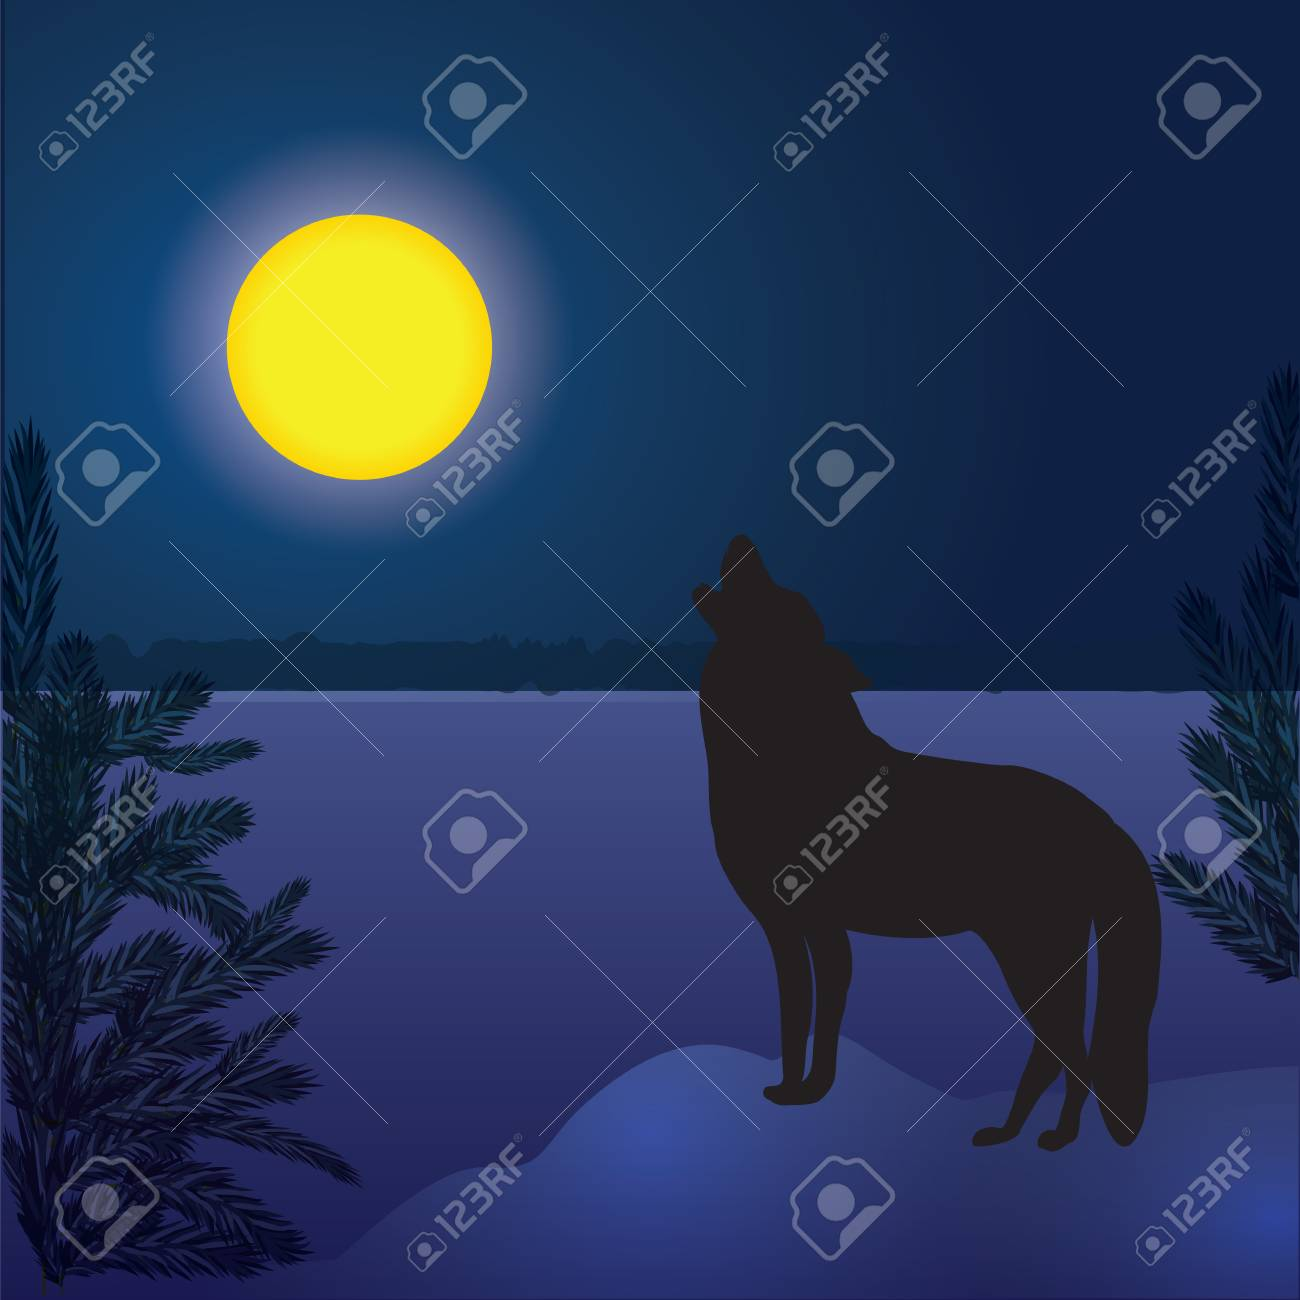 Wolf Moon Winter Landscape Forest Dark Blue Background Abstract Royalty Free Cliparts Vectors And Stock Illustration Image 69685896